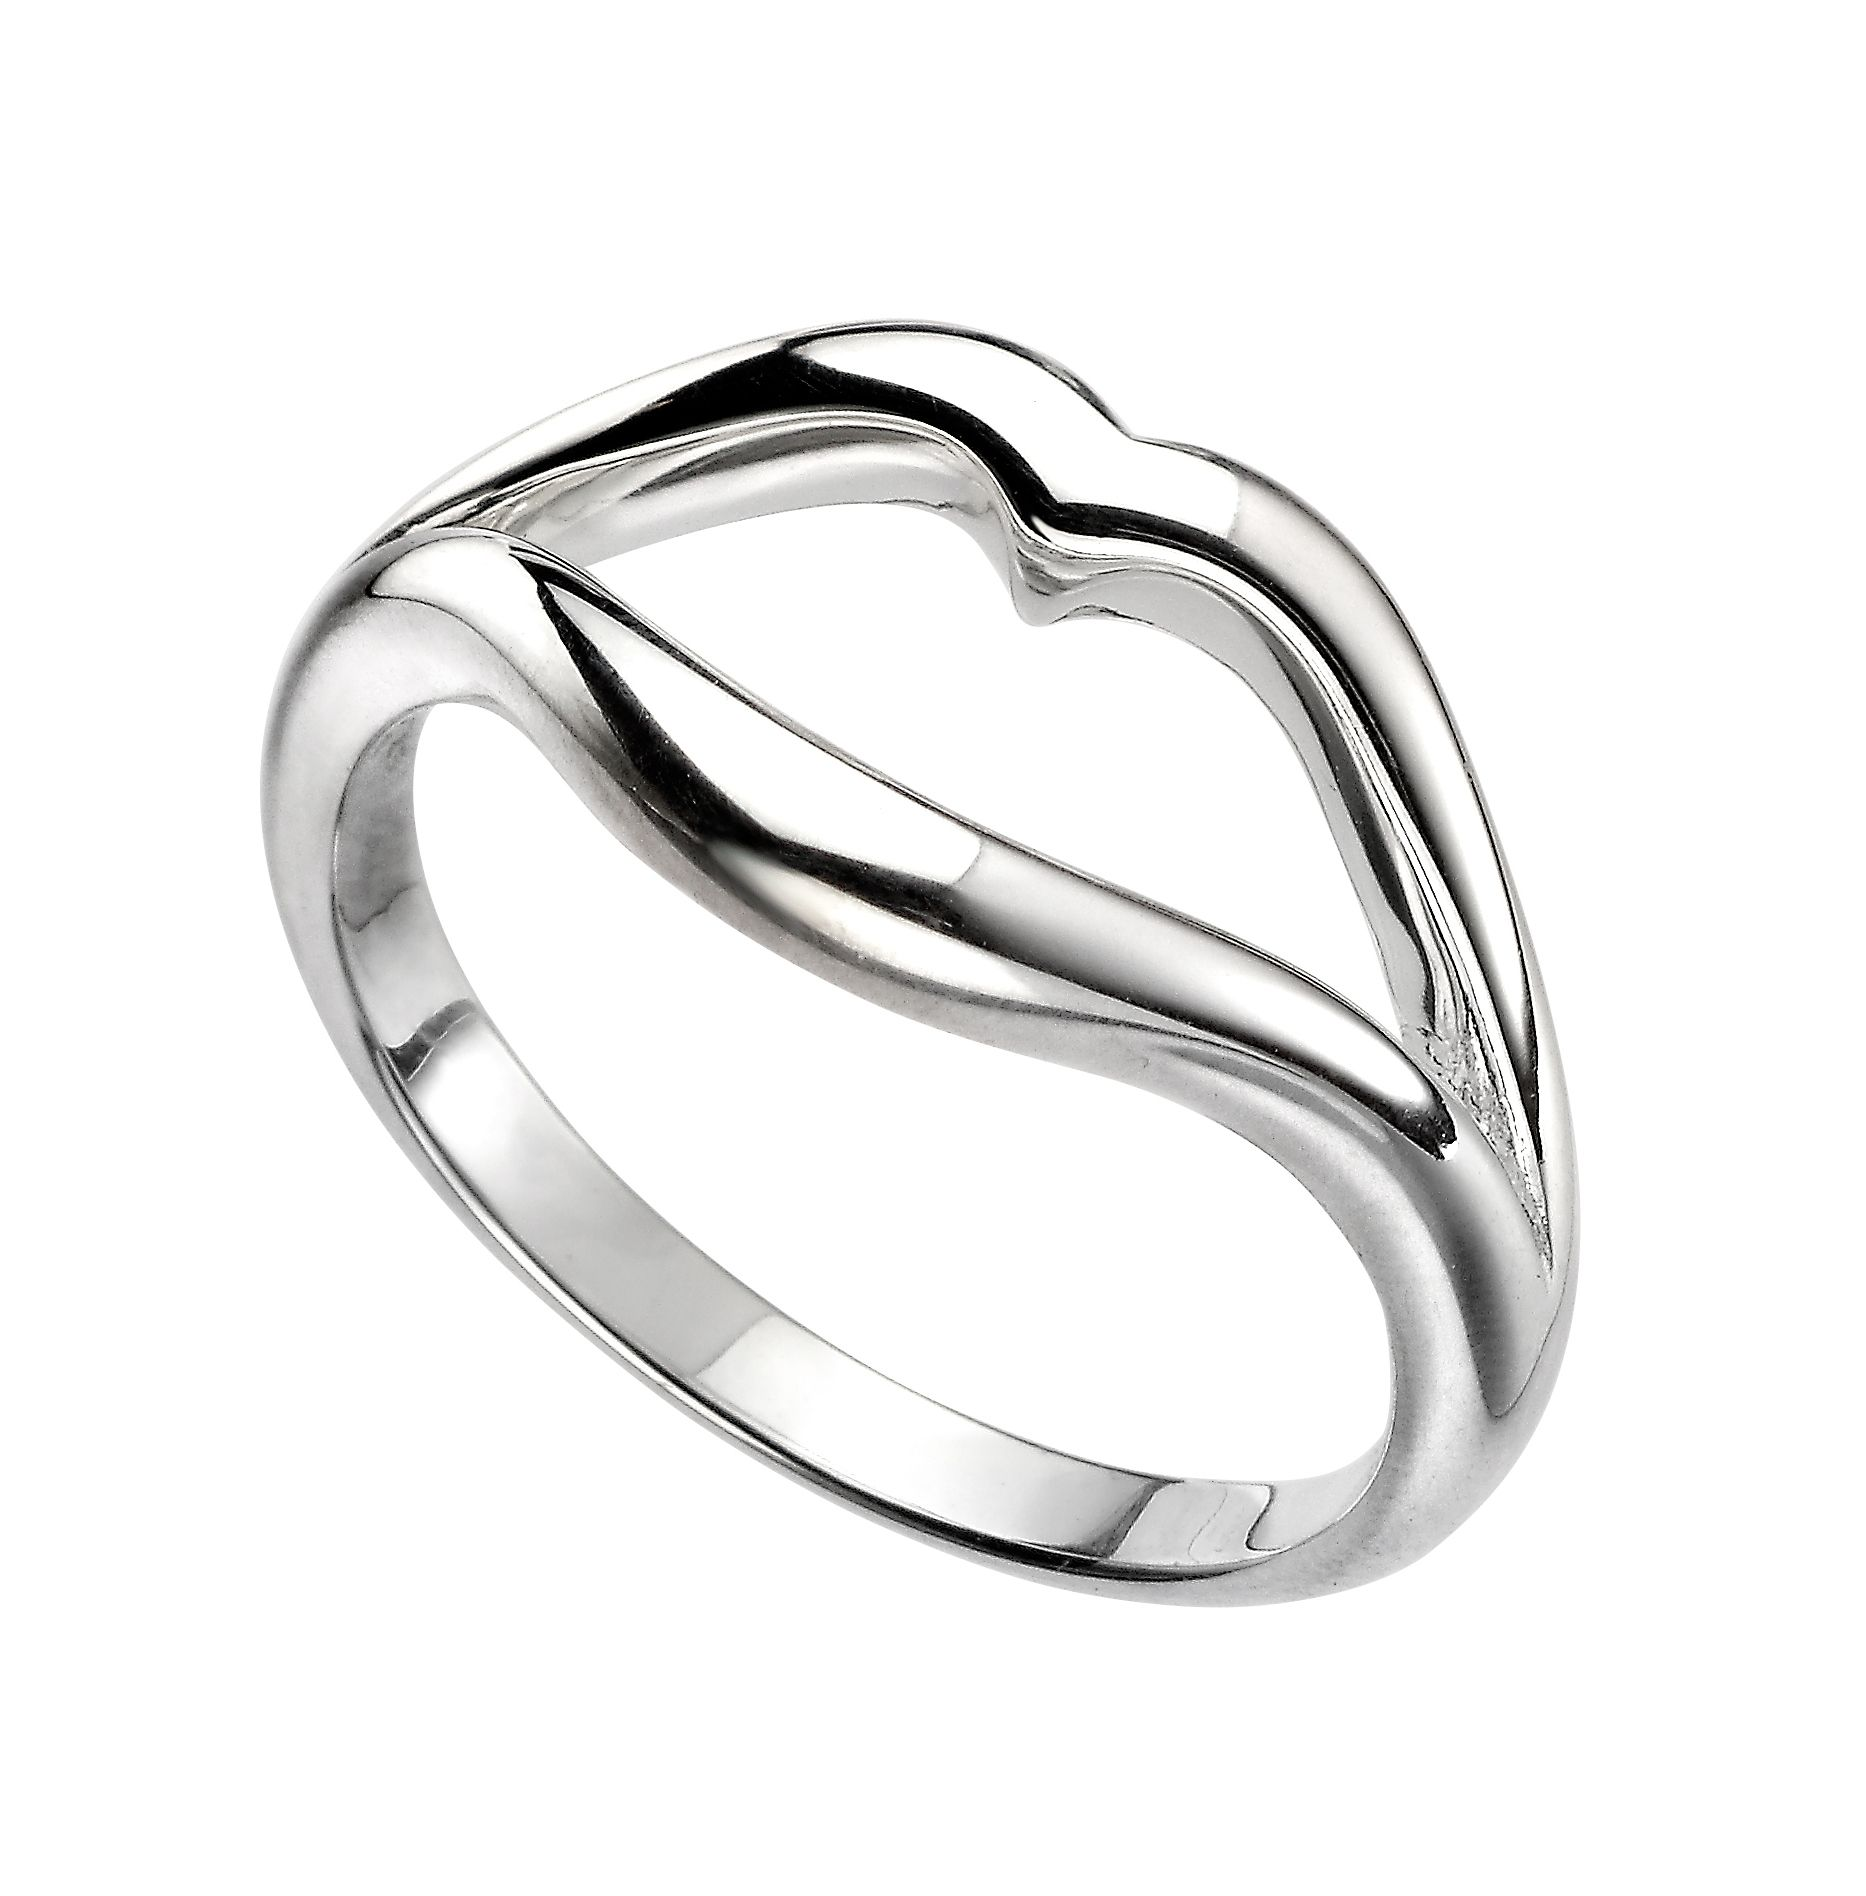 Elements Silver Womens 925 Sterling Silver Open Lips Ring